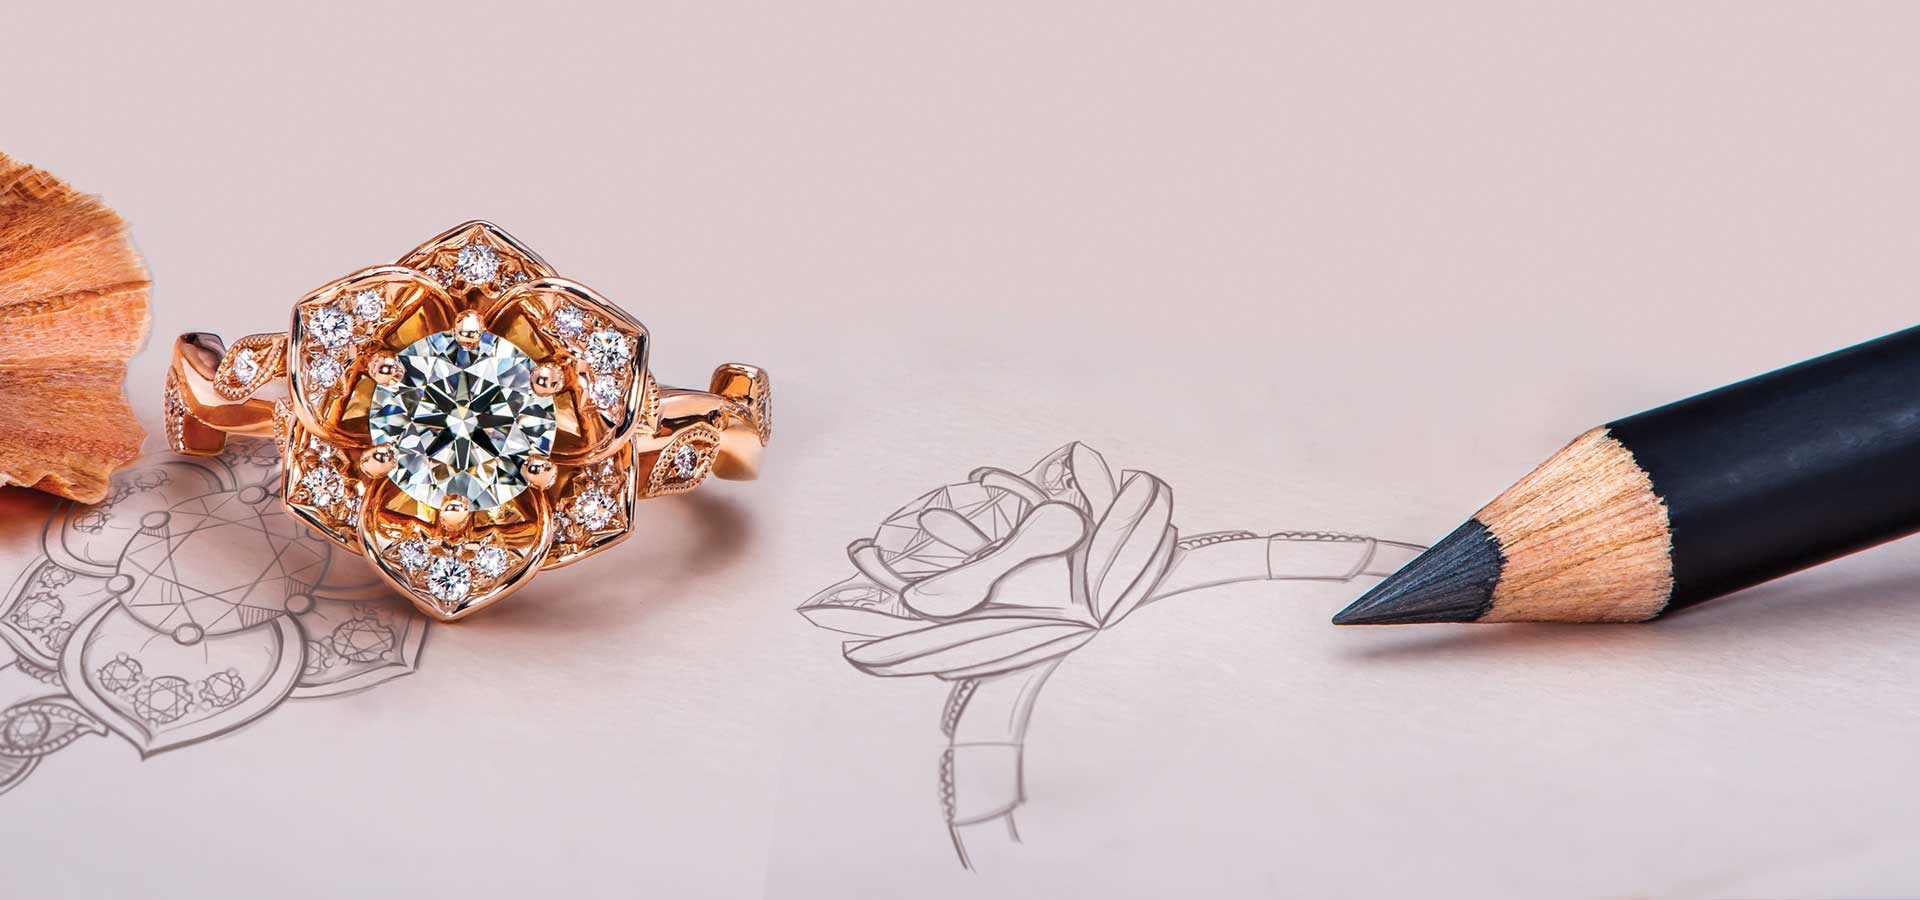 Best Jewelry Repair Seattle Image Of Jewelry